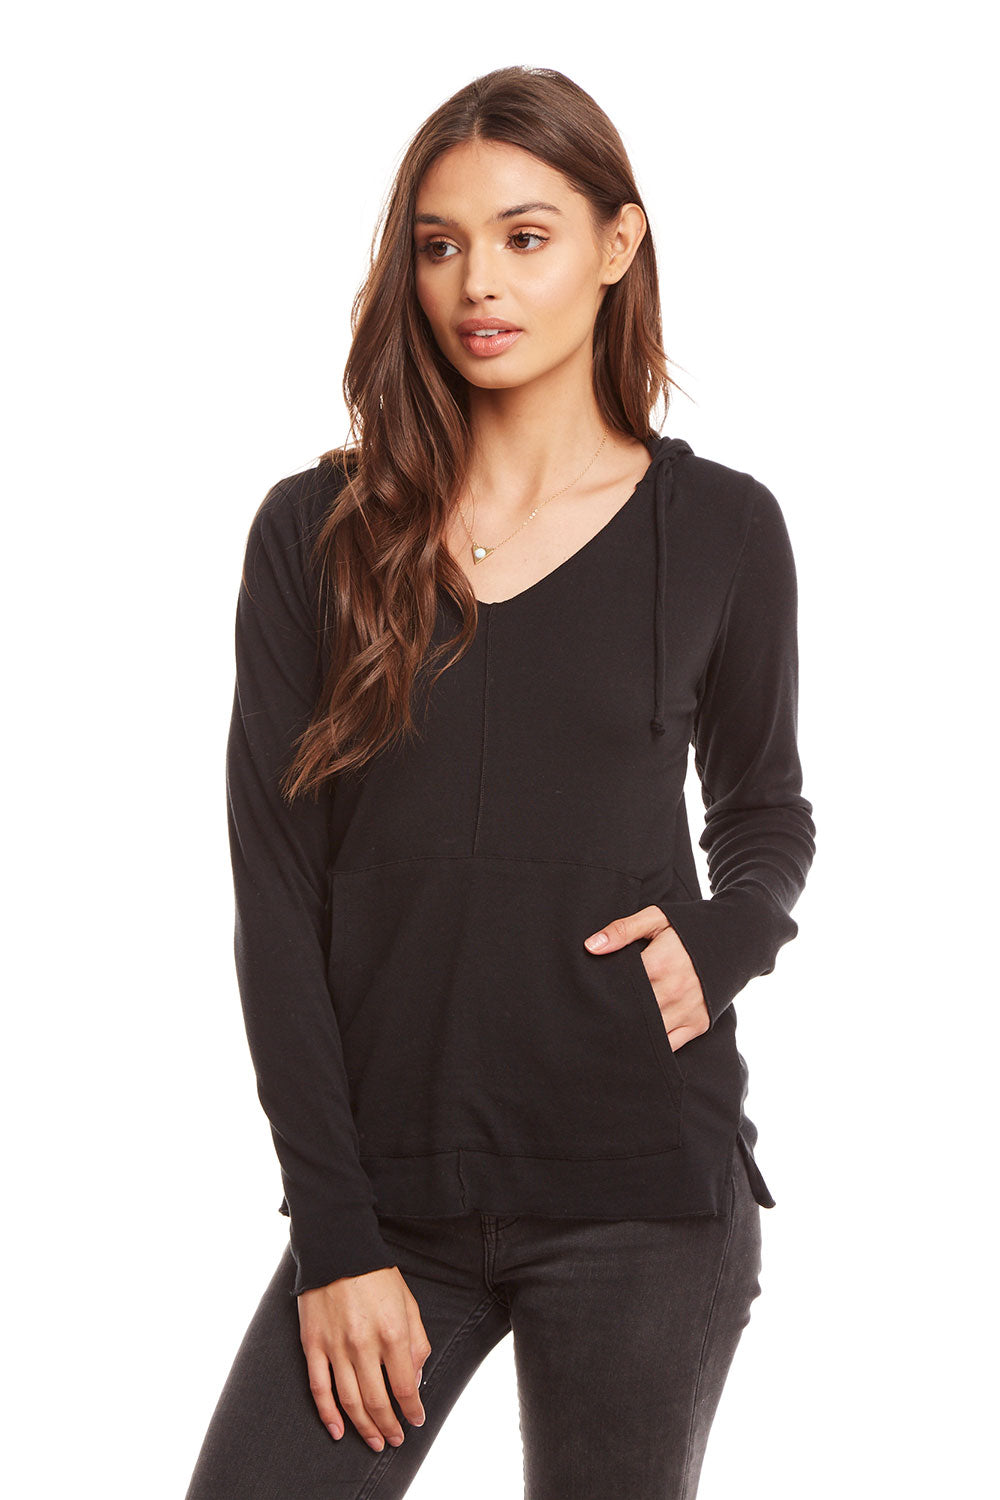 Baby Rib L/S Split Side Pullover Hoodie WOMENS chaserbrand4.myshopify.com